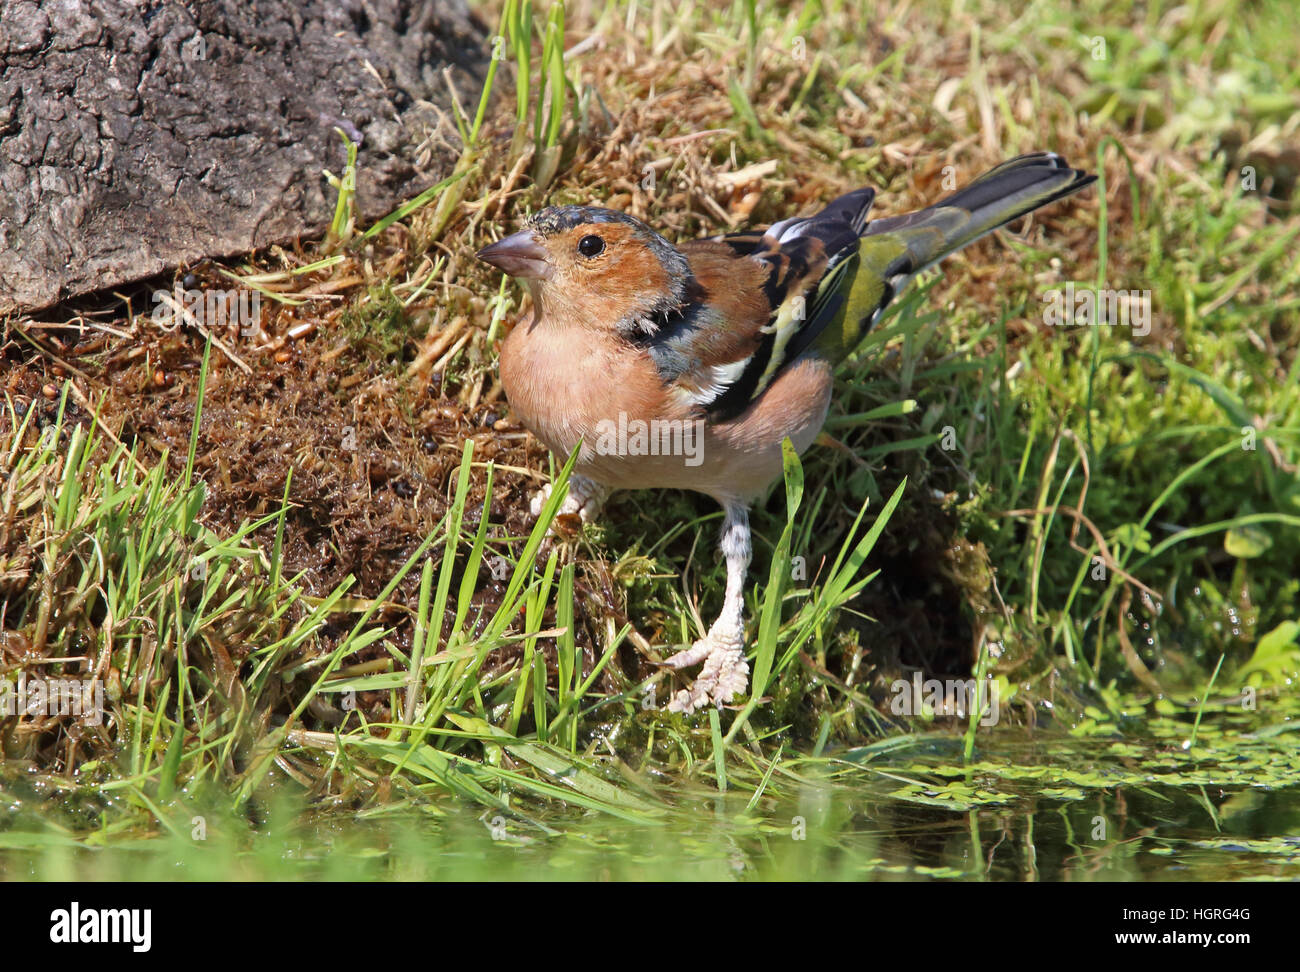 Common Chaffinch (Fringilla coelebs gengleri) adult male feet badly affected by 'Scaly foot'  Eccles-on - Stock Image